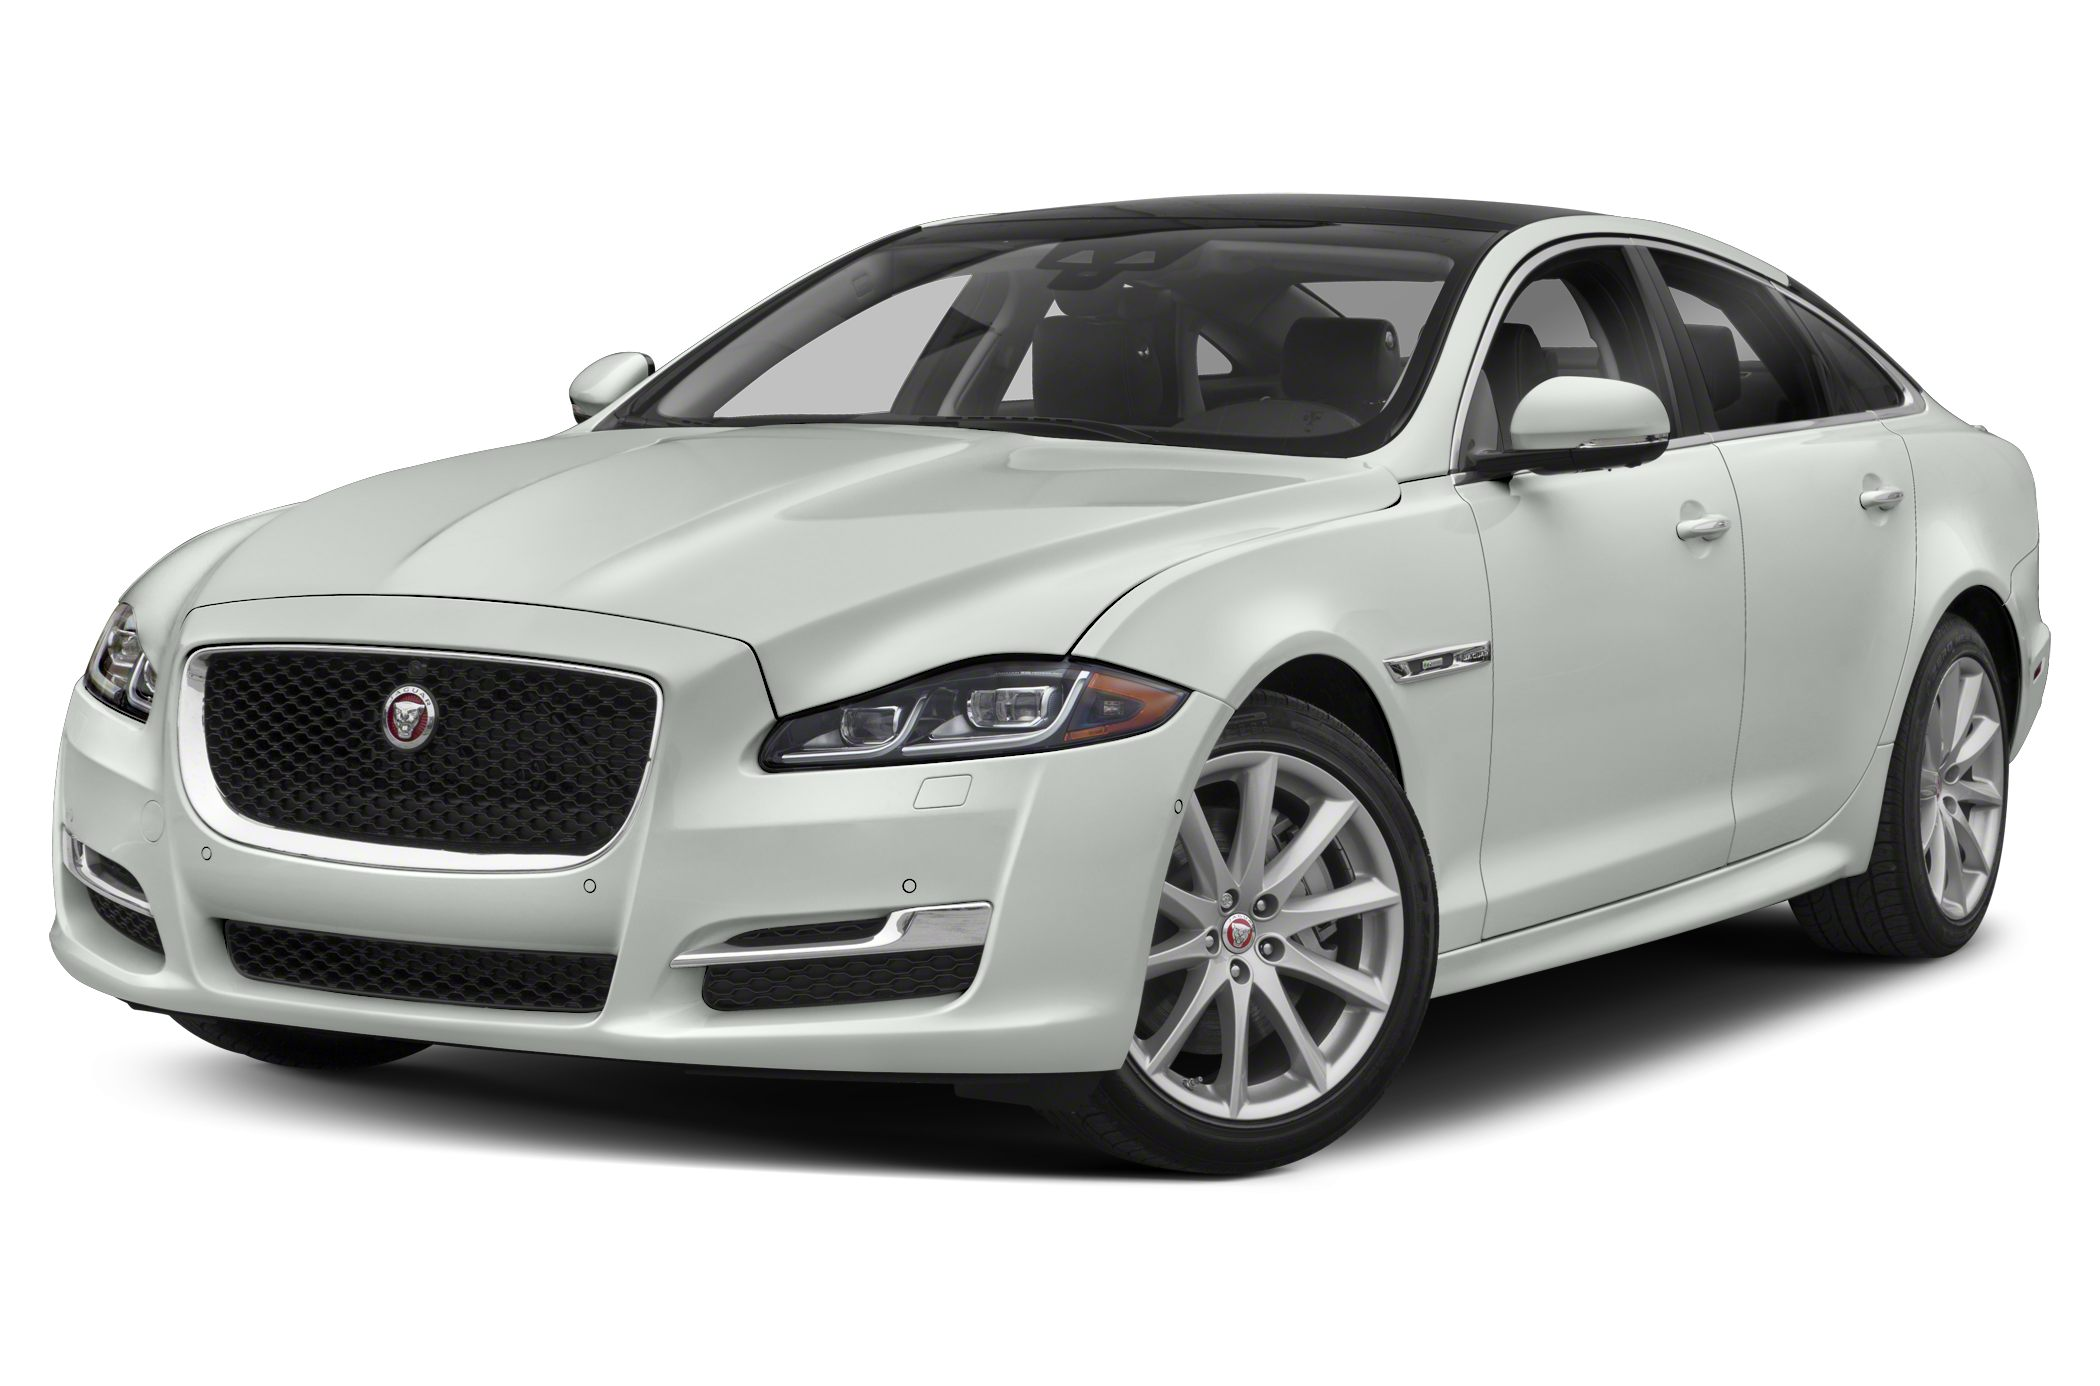 2014 Jaguar XJR unleashed just ahead of New York show [w/video]